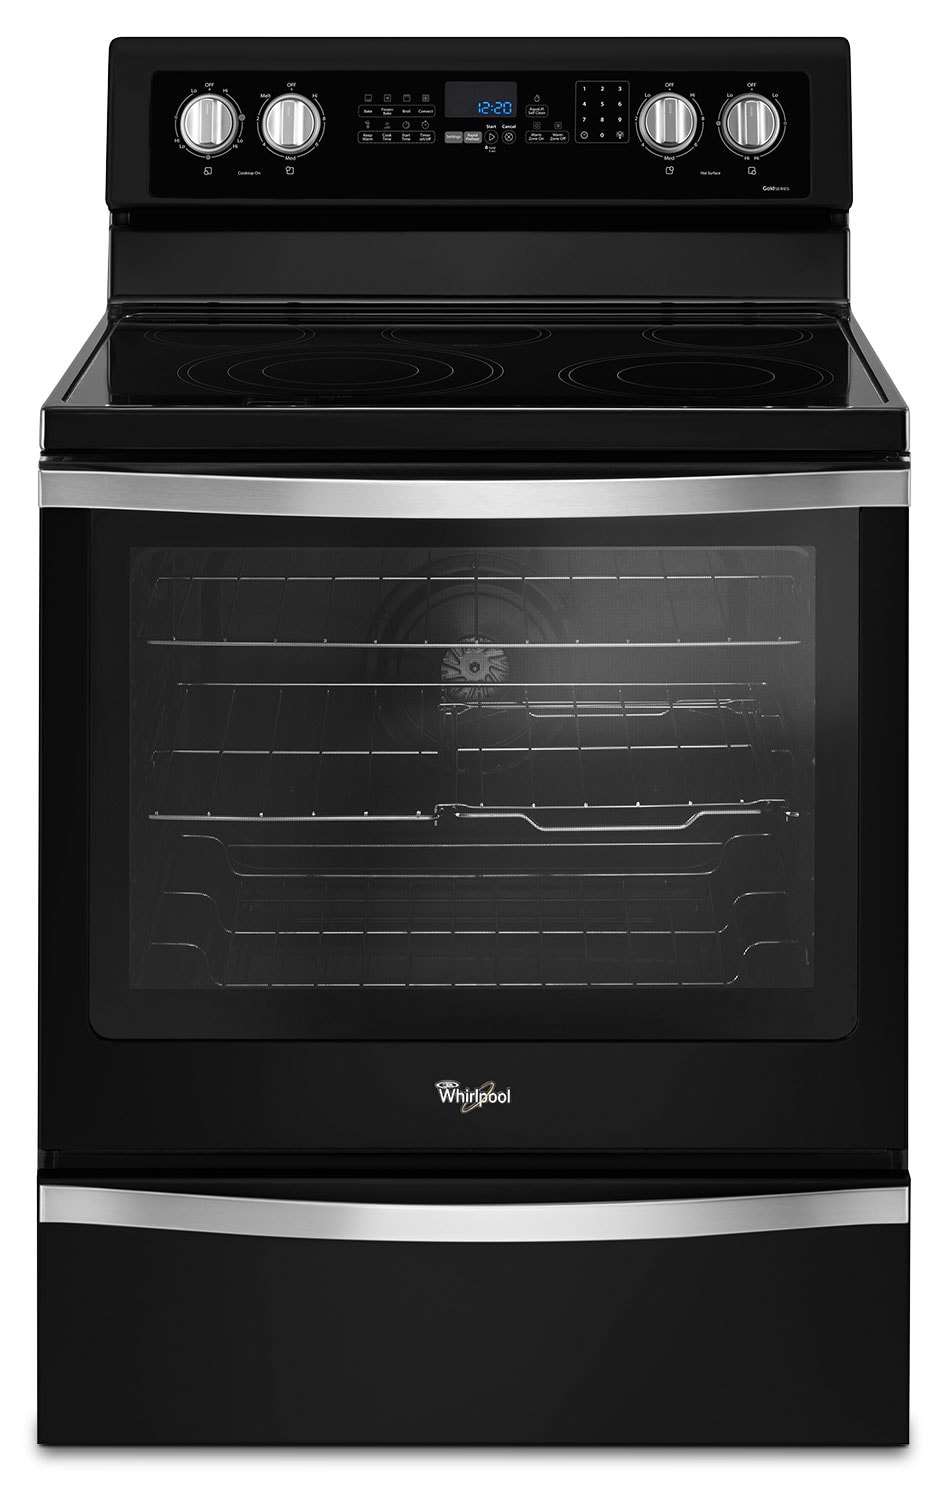 Whirlpool 6.4 Cu. Ft. Freestanding Electric Range – YWFE745H0FE